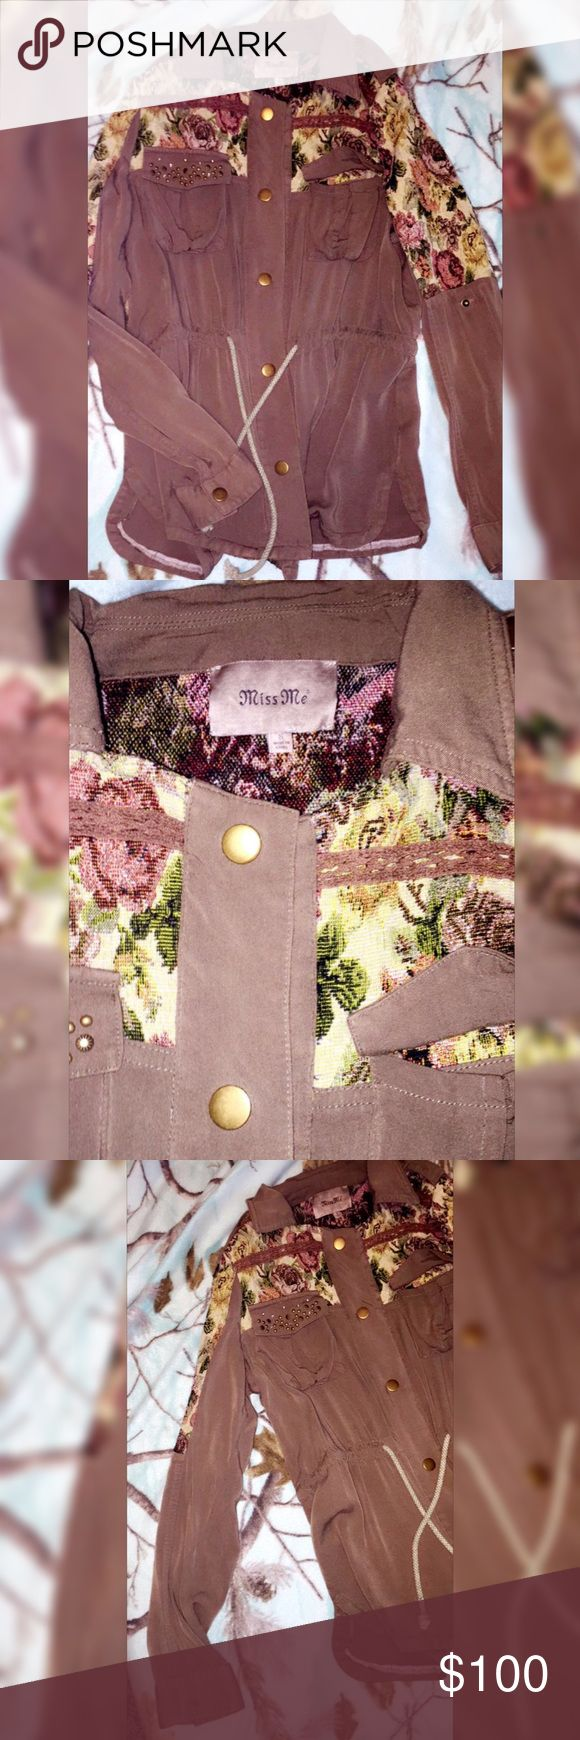 Cute MISSME brown and olive green utility jacket Miss me brand new without tags brown and olive green utility jacket zip up , great for the fall and  spring, lighter jacket Miss Me Jackets & Coats Trench Coats